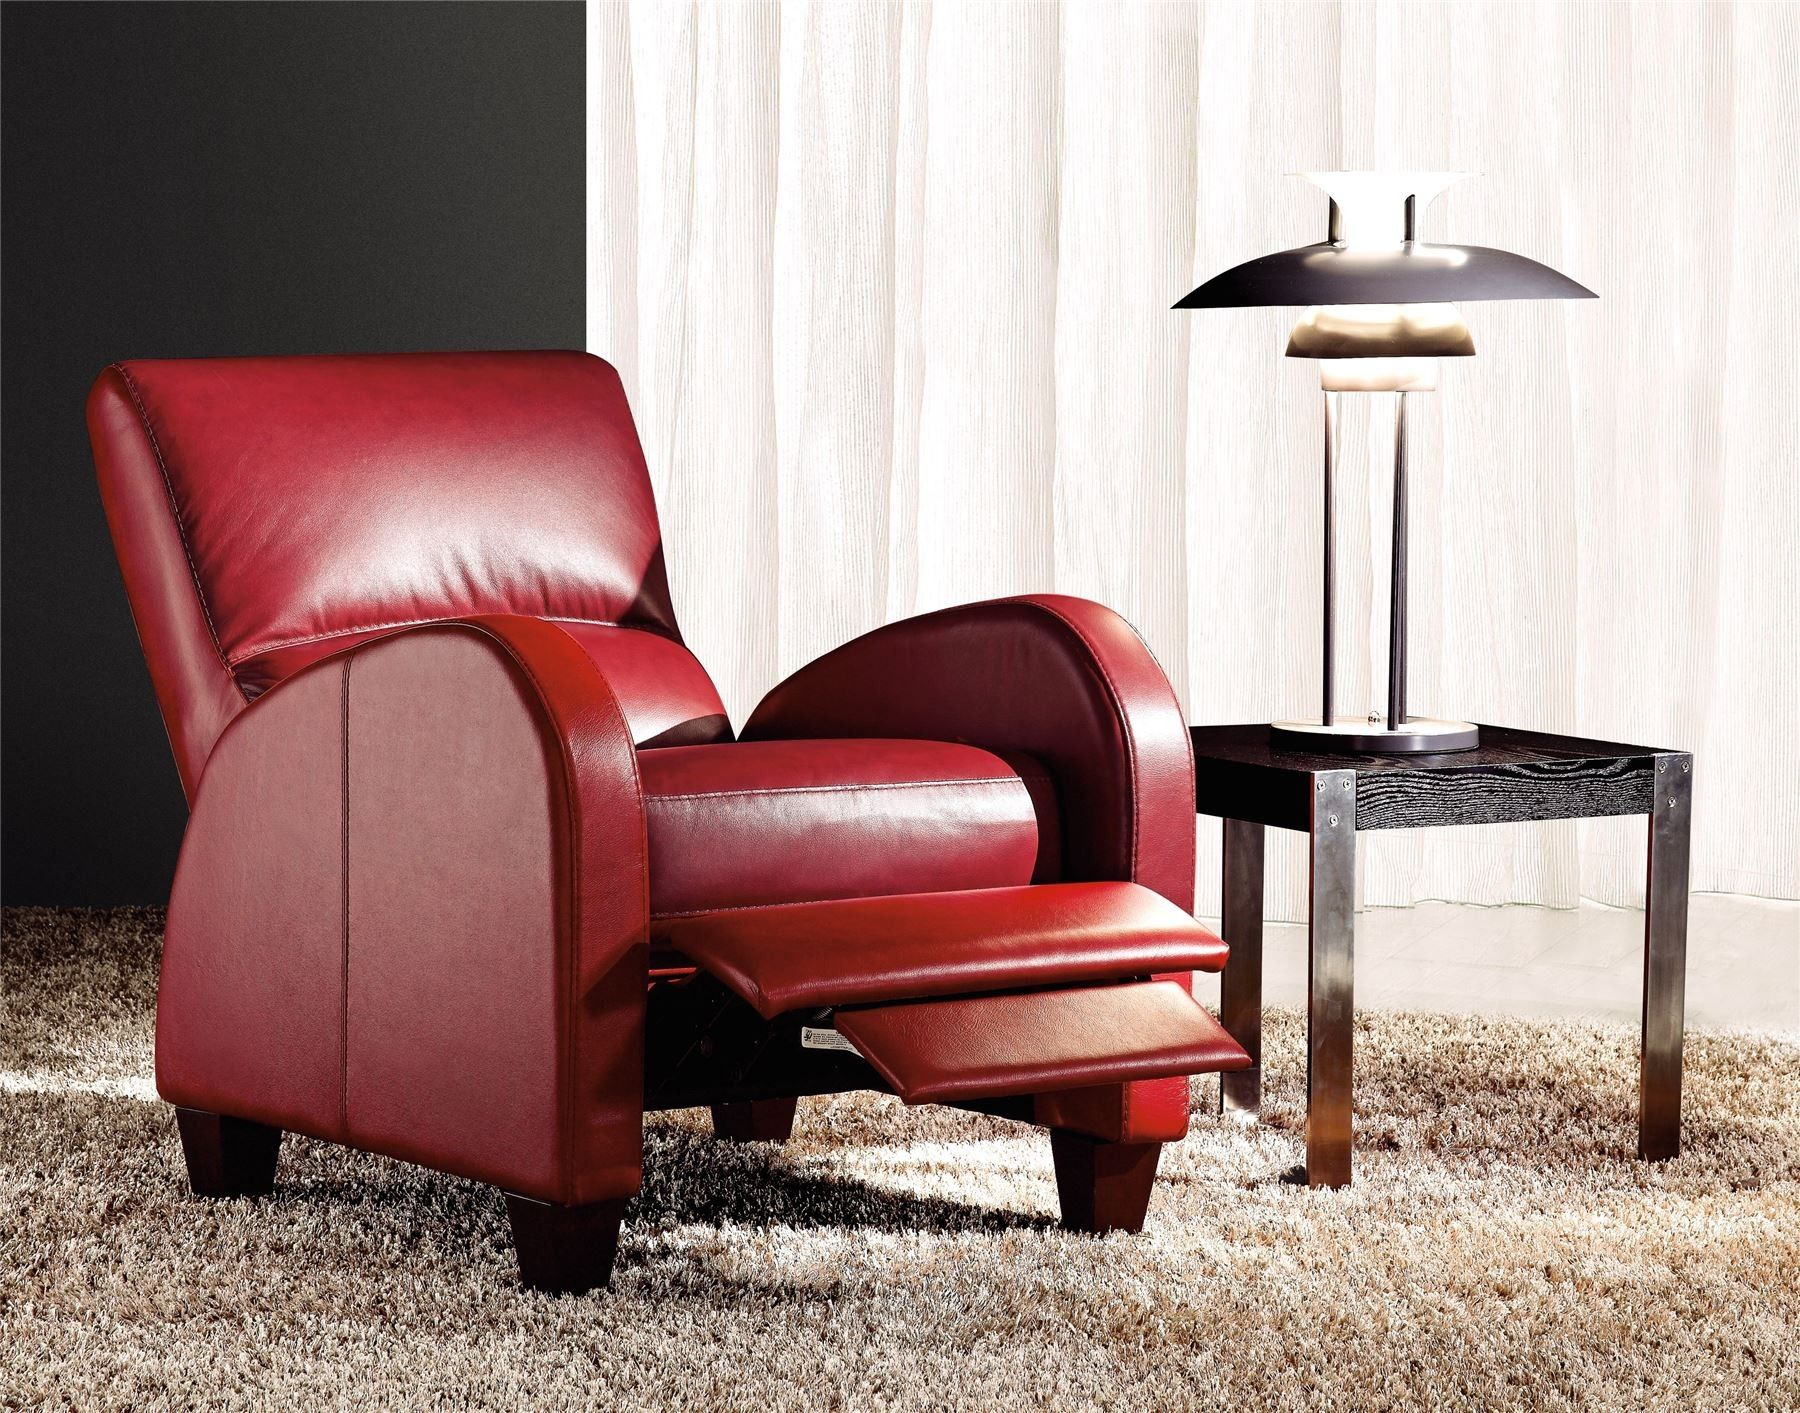 COLERAINE LEATHER RECLINER CHAIR IN RED Leather recliner